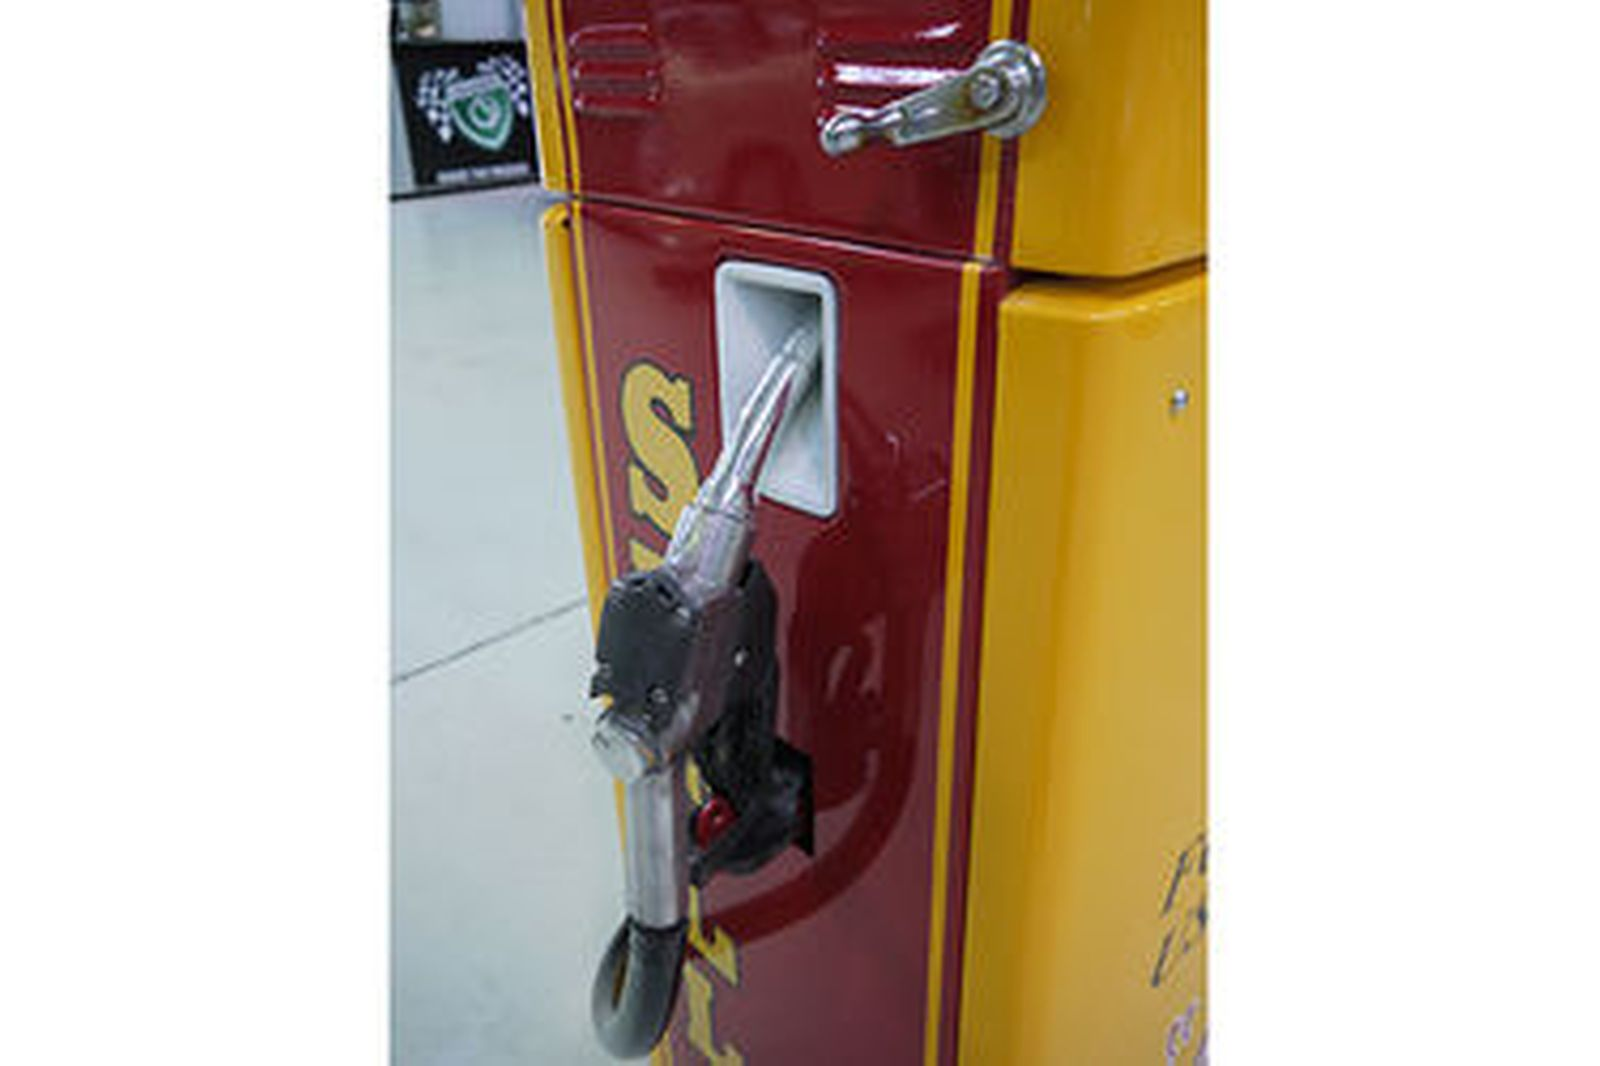 Petrol Pump - Wayne 605 Industrial in Shell Racing Livery (cosmetically restored